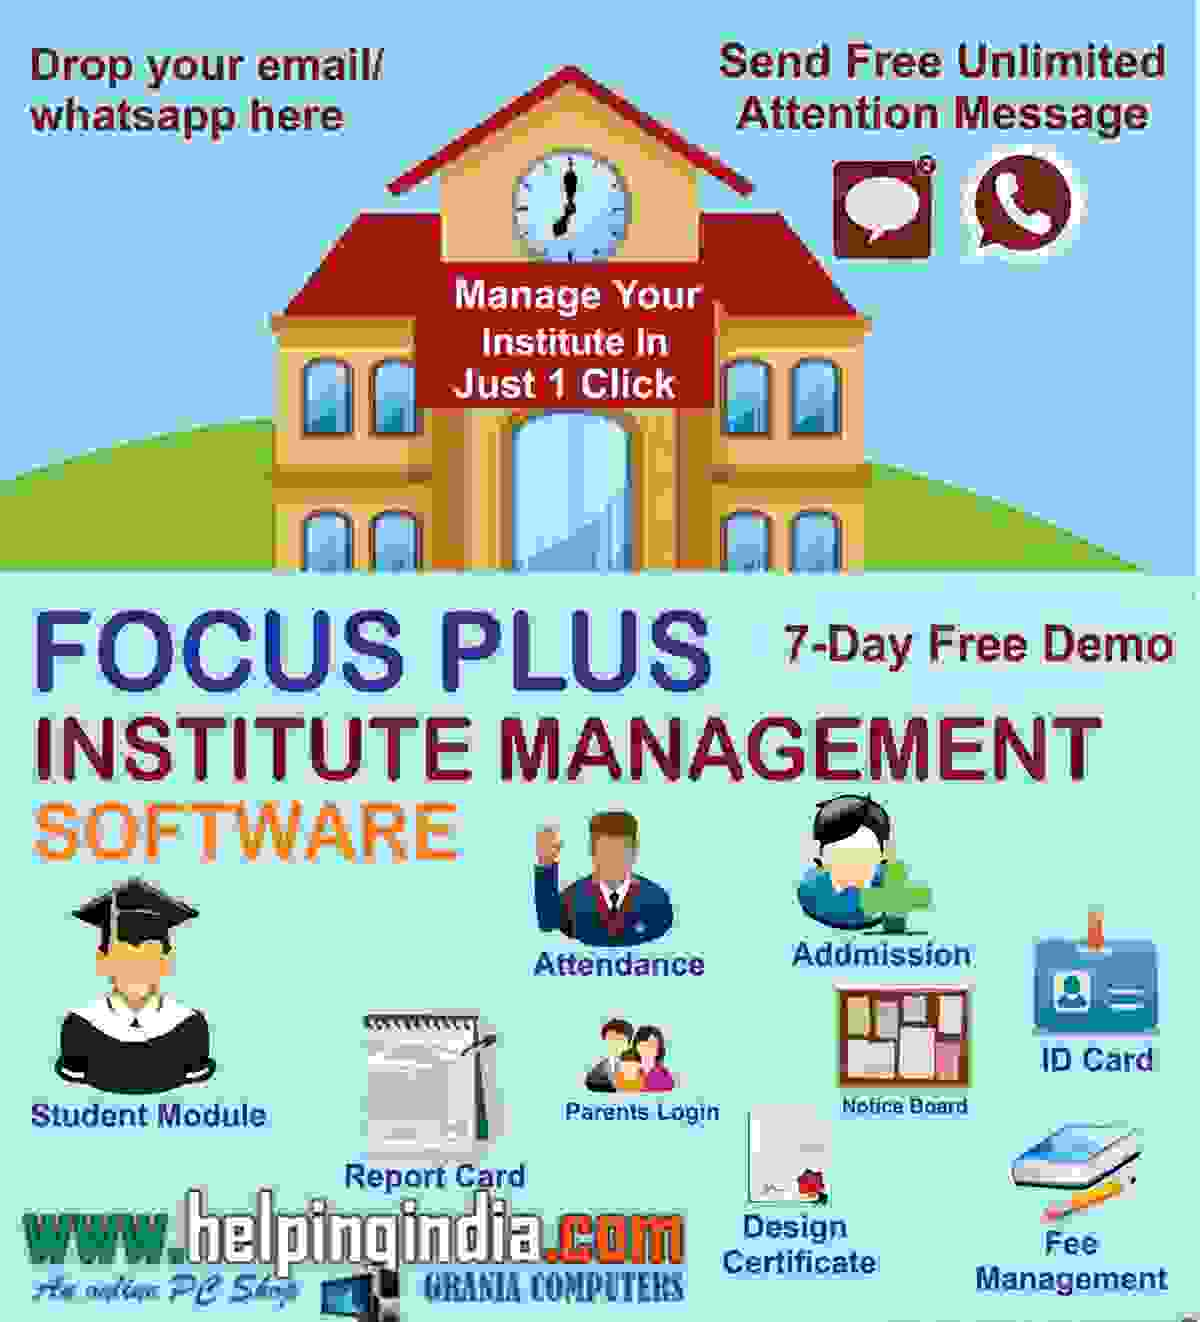 Focus Plus Tuition|Coaching|Computer Institutes ERP GST Ready Management Best Software